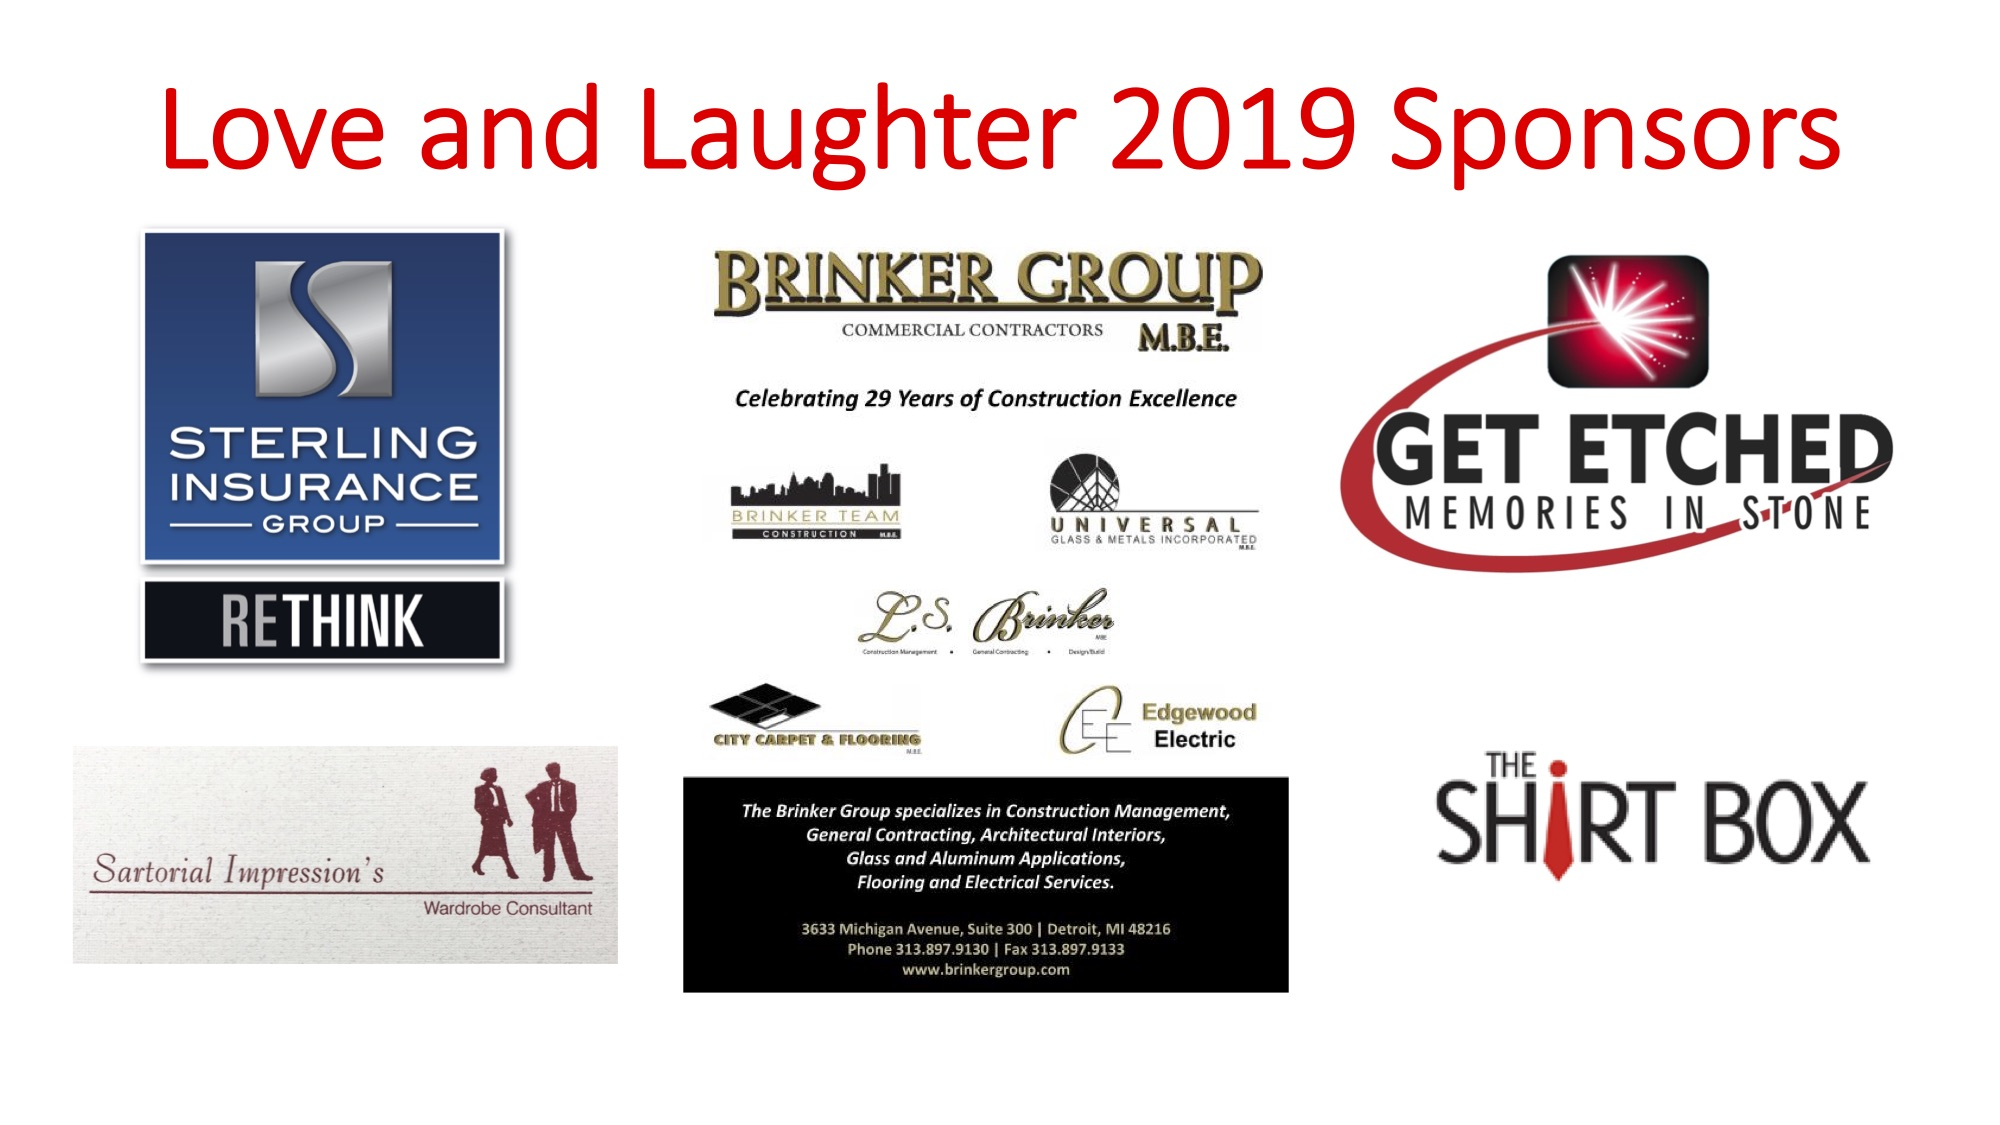 Love and Laughter 2019 Sponsors